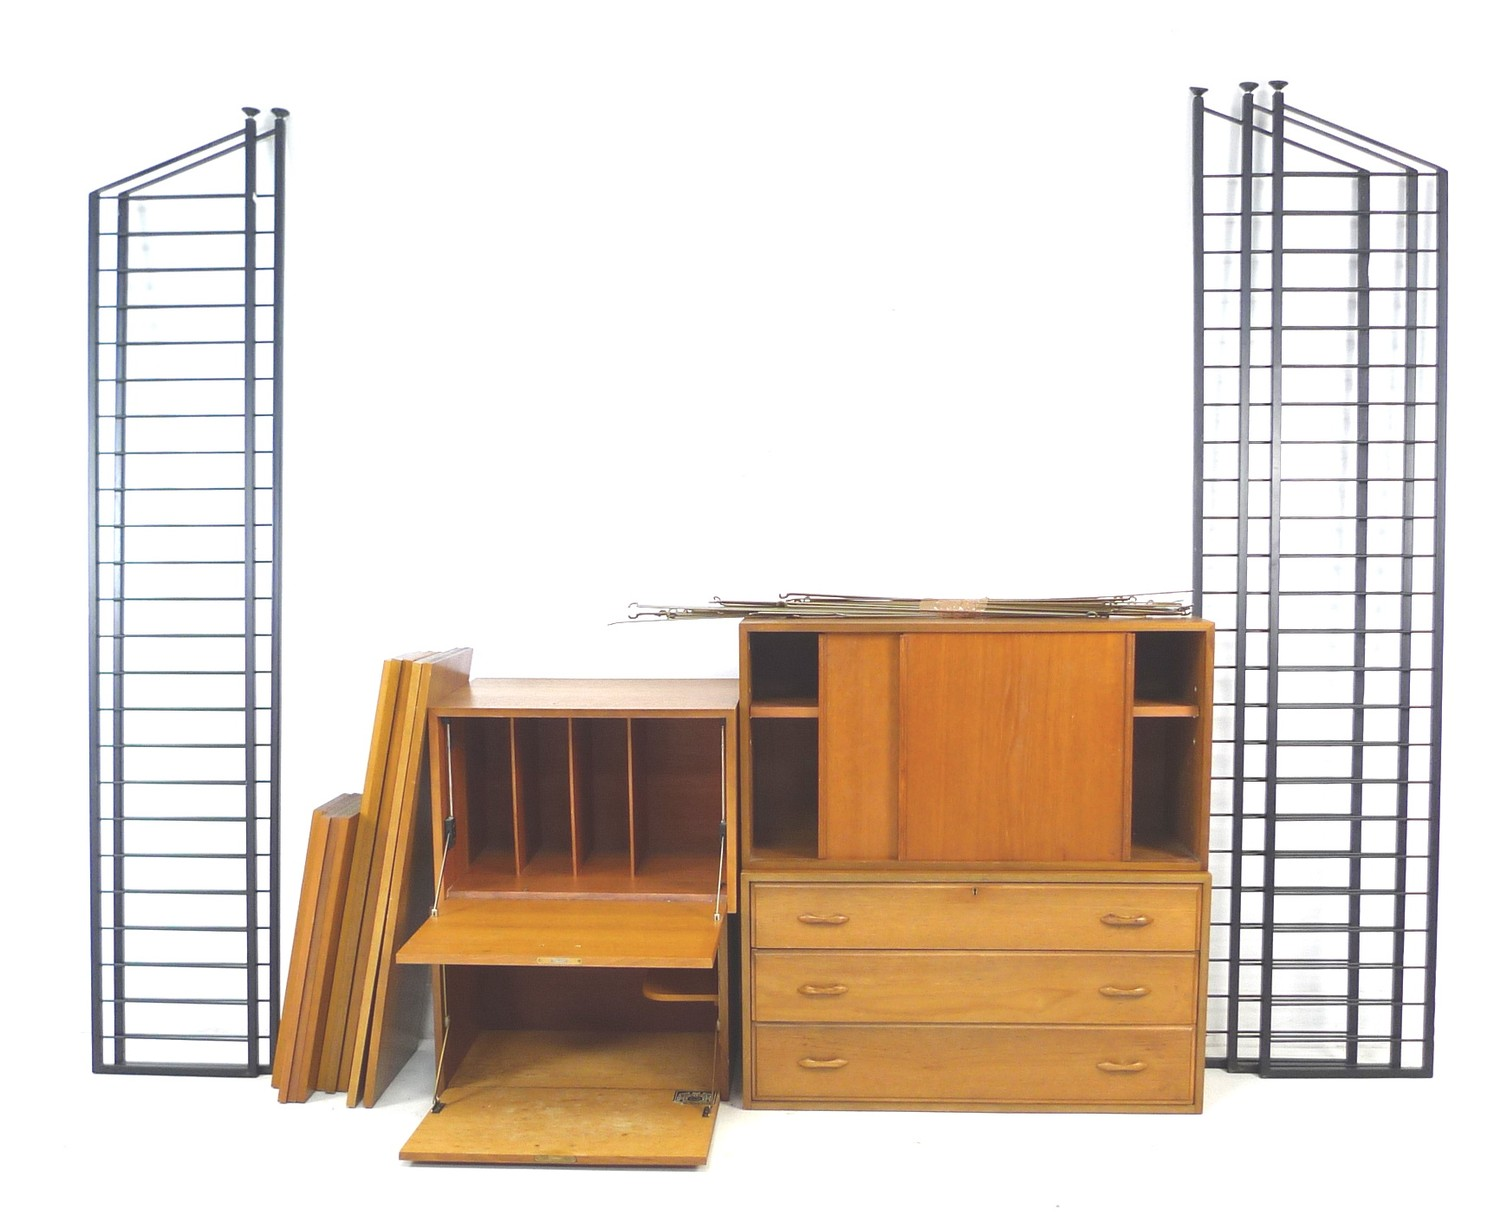 A set of Ladderax, Staples, adjustable shelving units, with four storage, desk and drawer units,